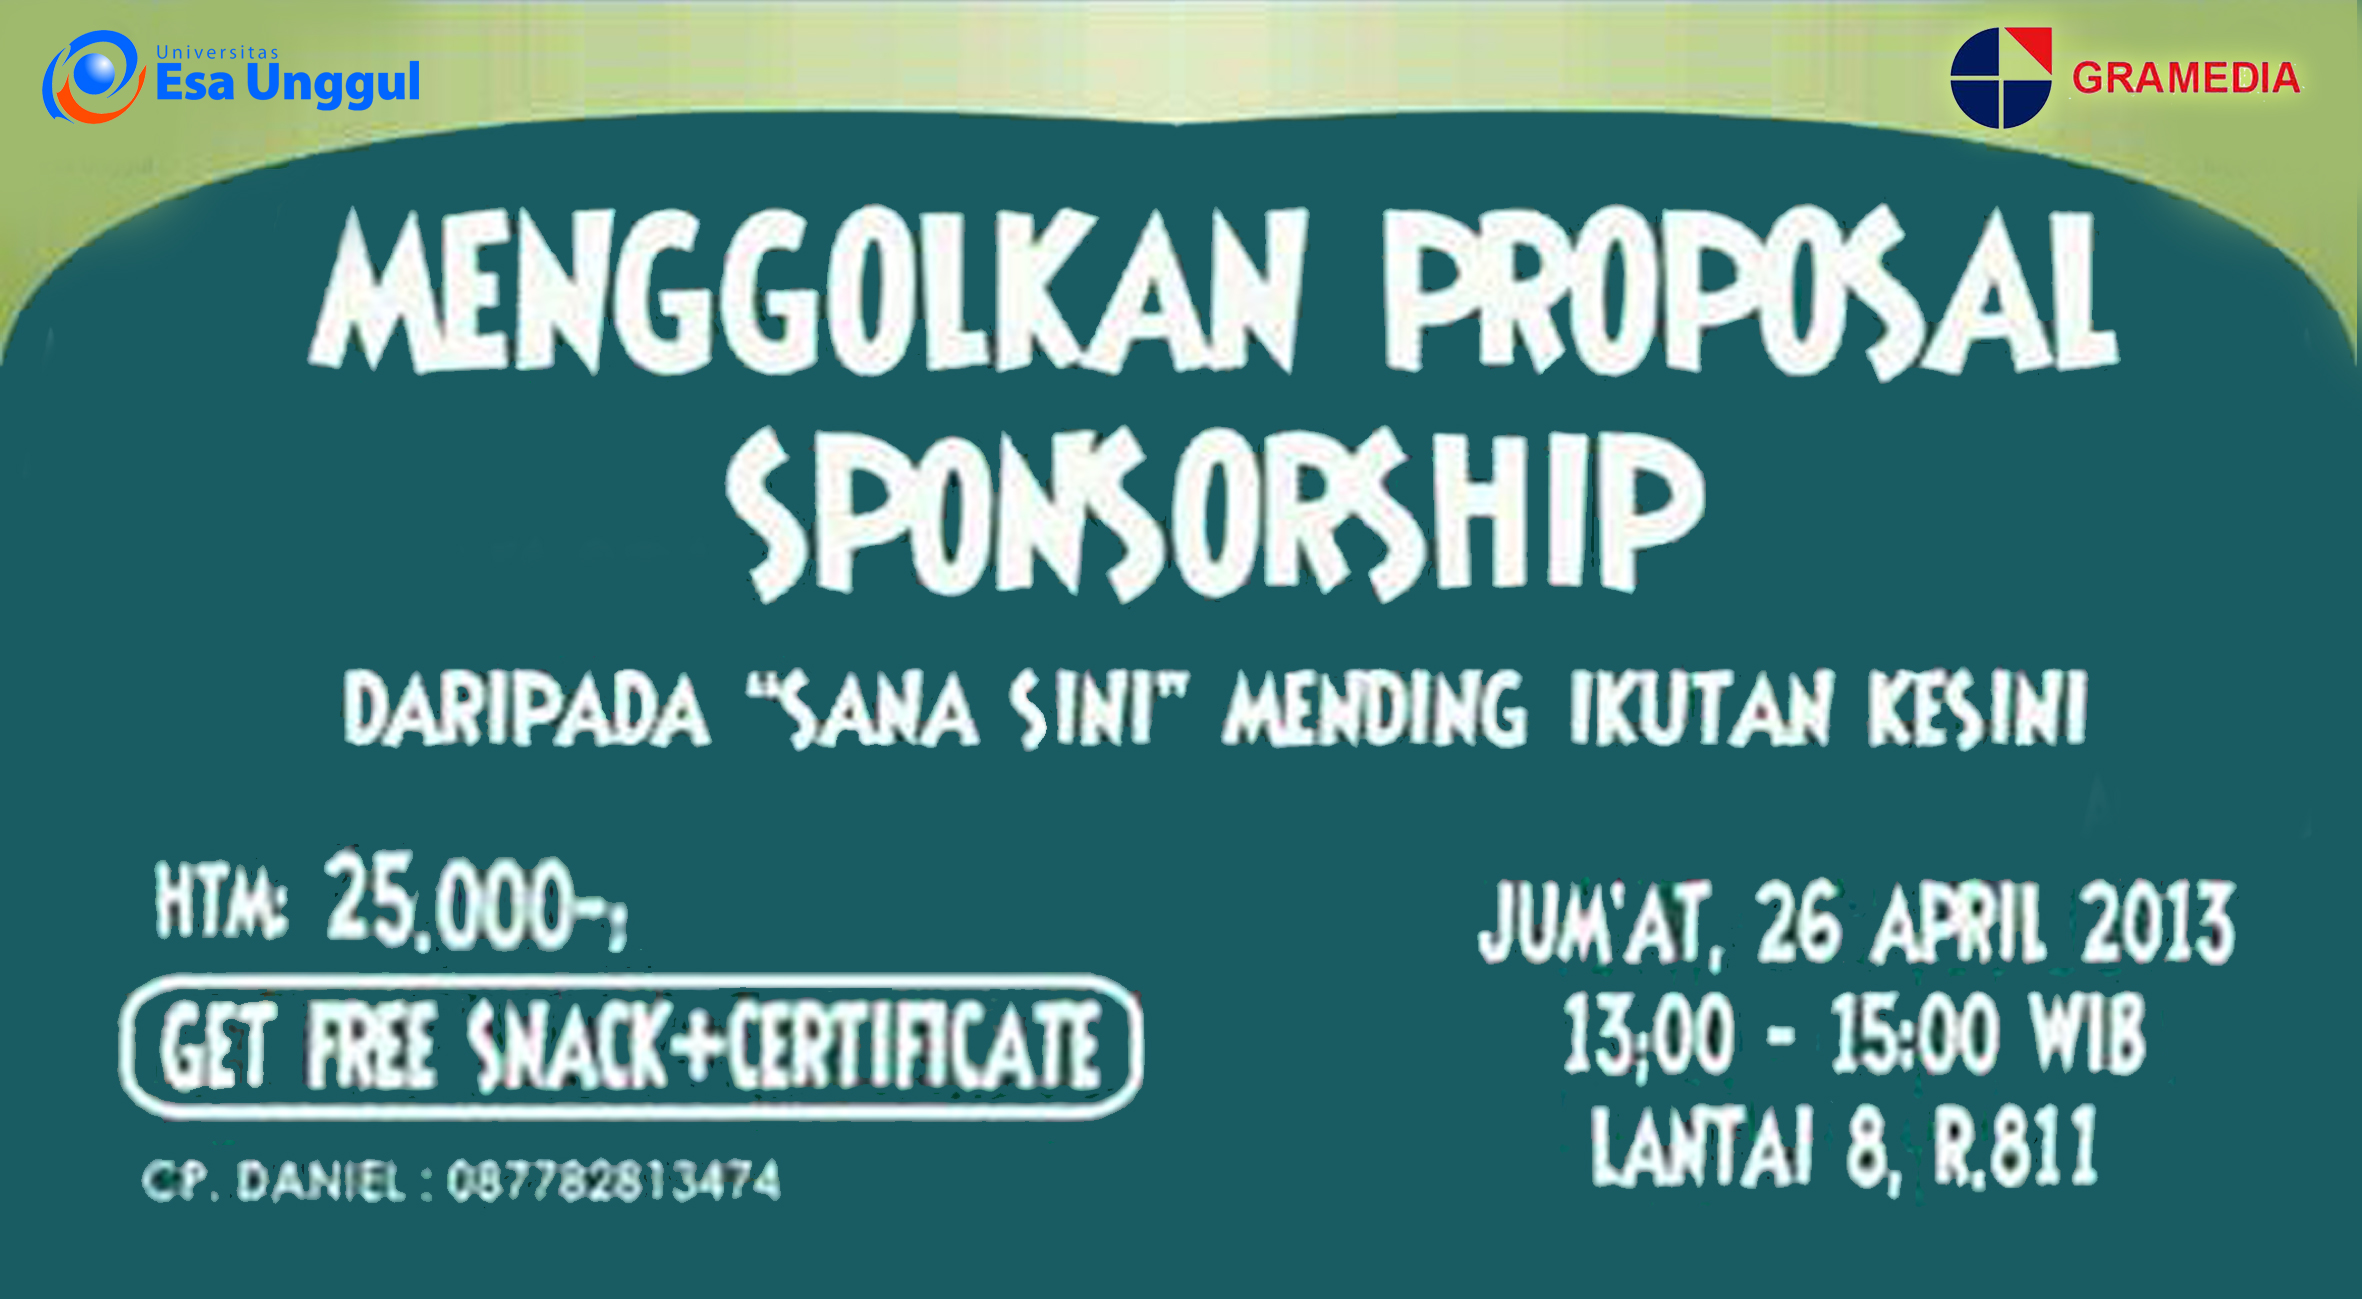 "Career Center Esa Unggul menyelenggarakan seminar "" Menggolkan Proposal Sponsorship"""